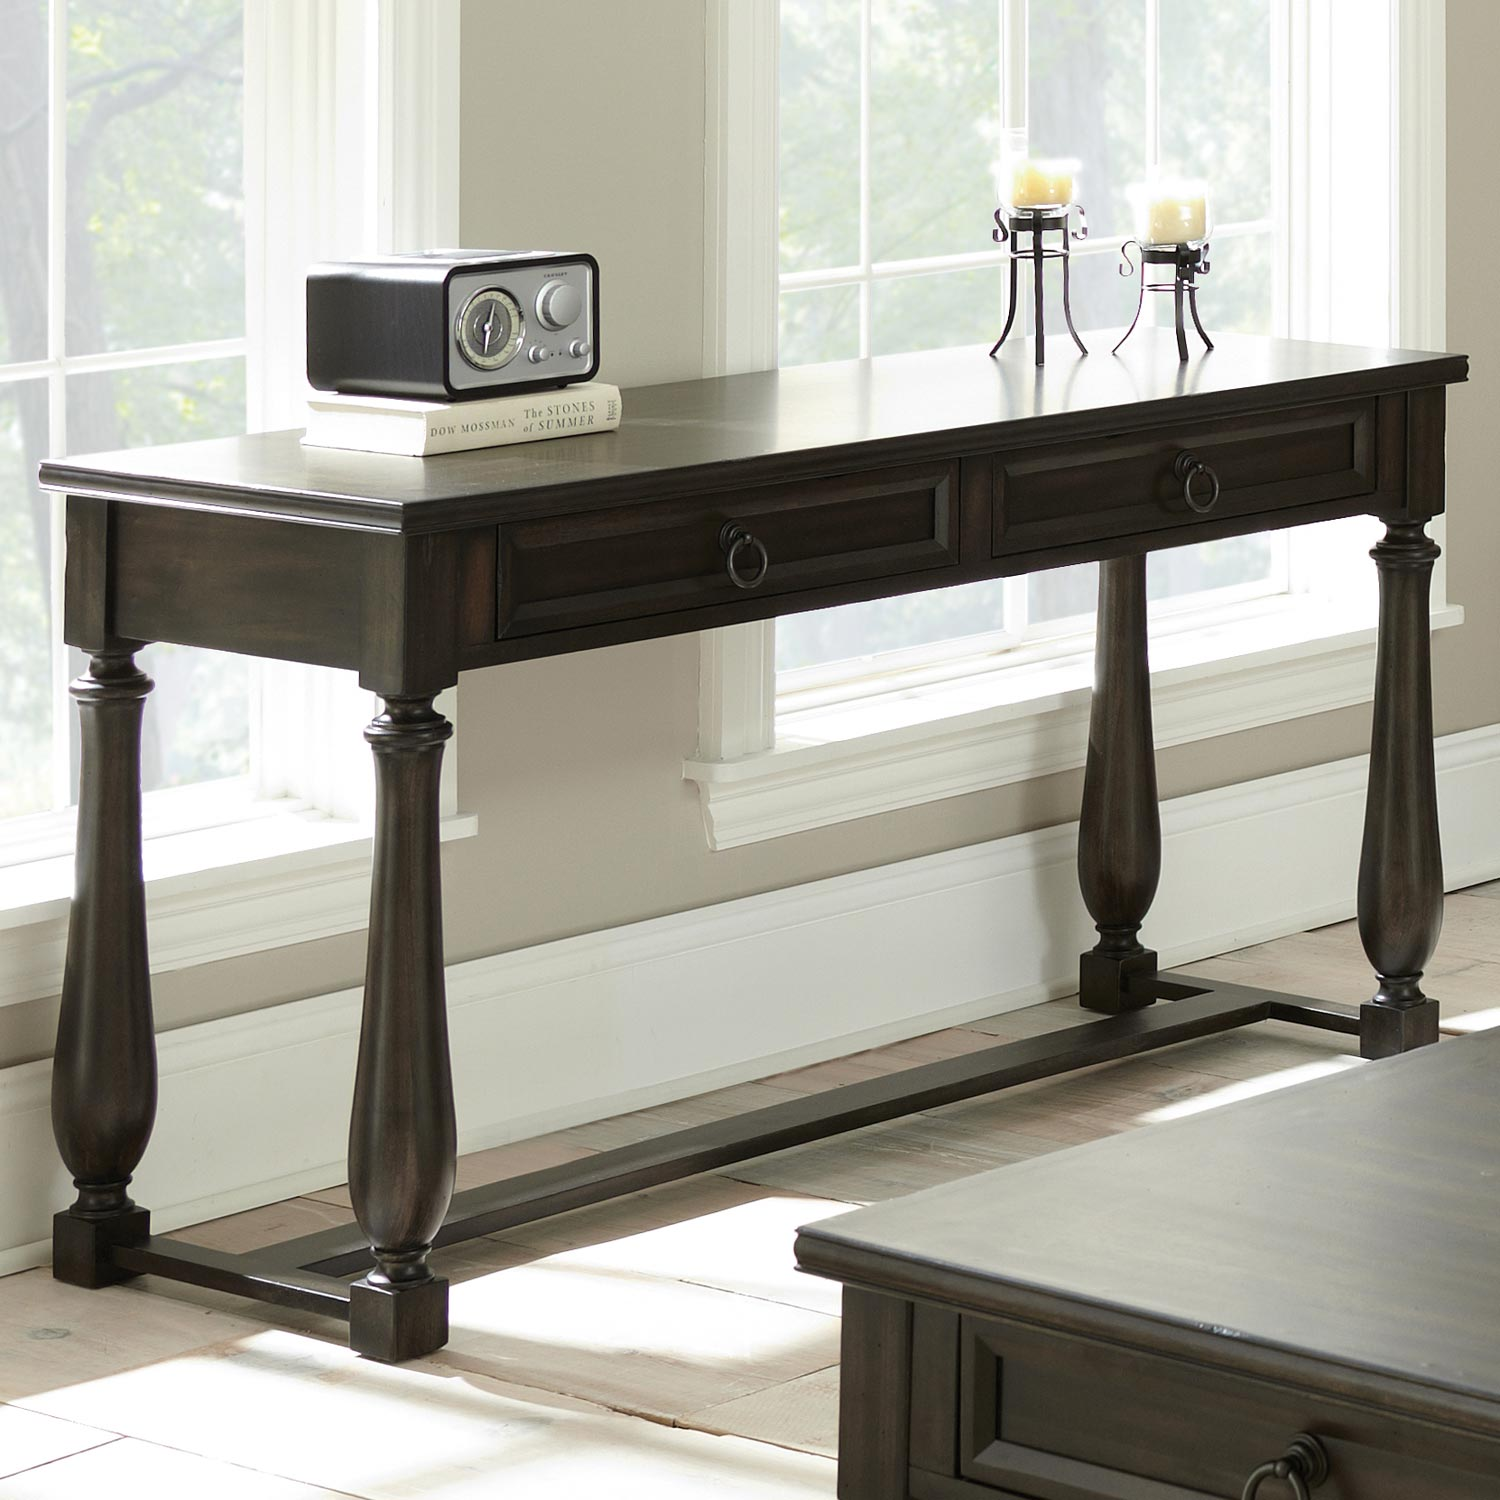 Leona Sofa Table - Turned Legs, Ring Drawer Pulls - SSC-LY150S